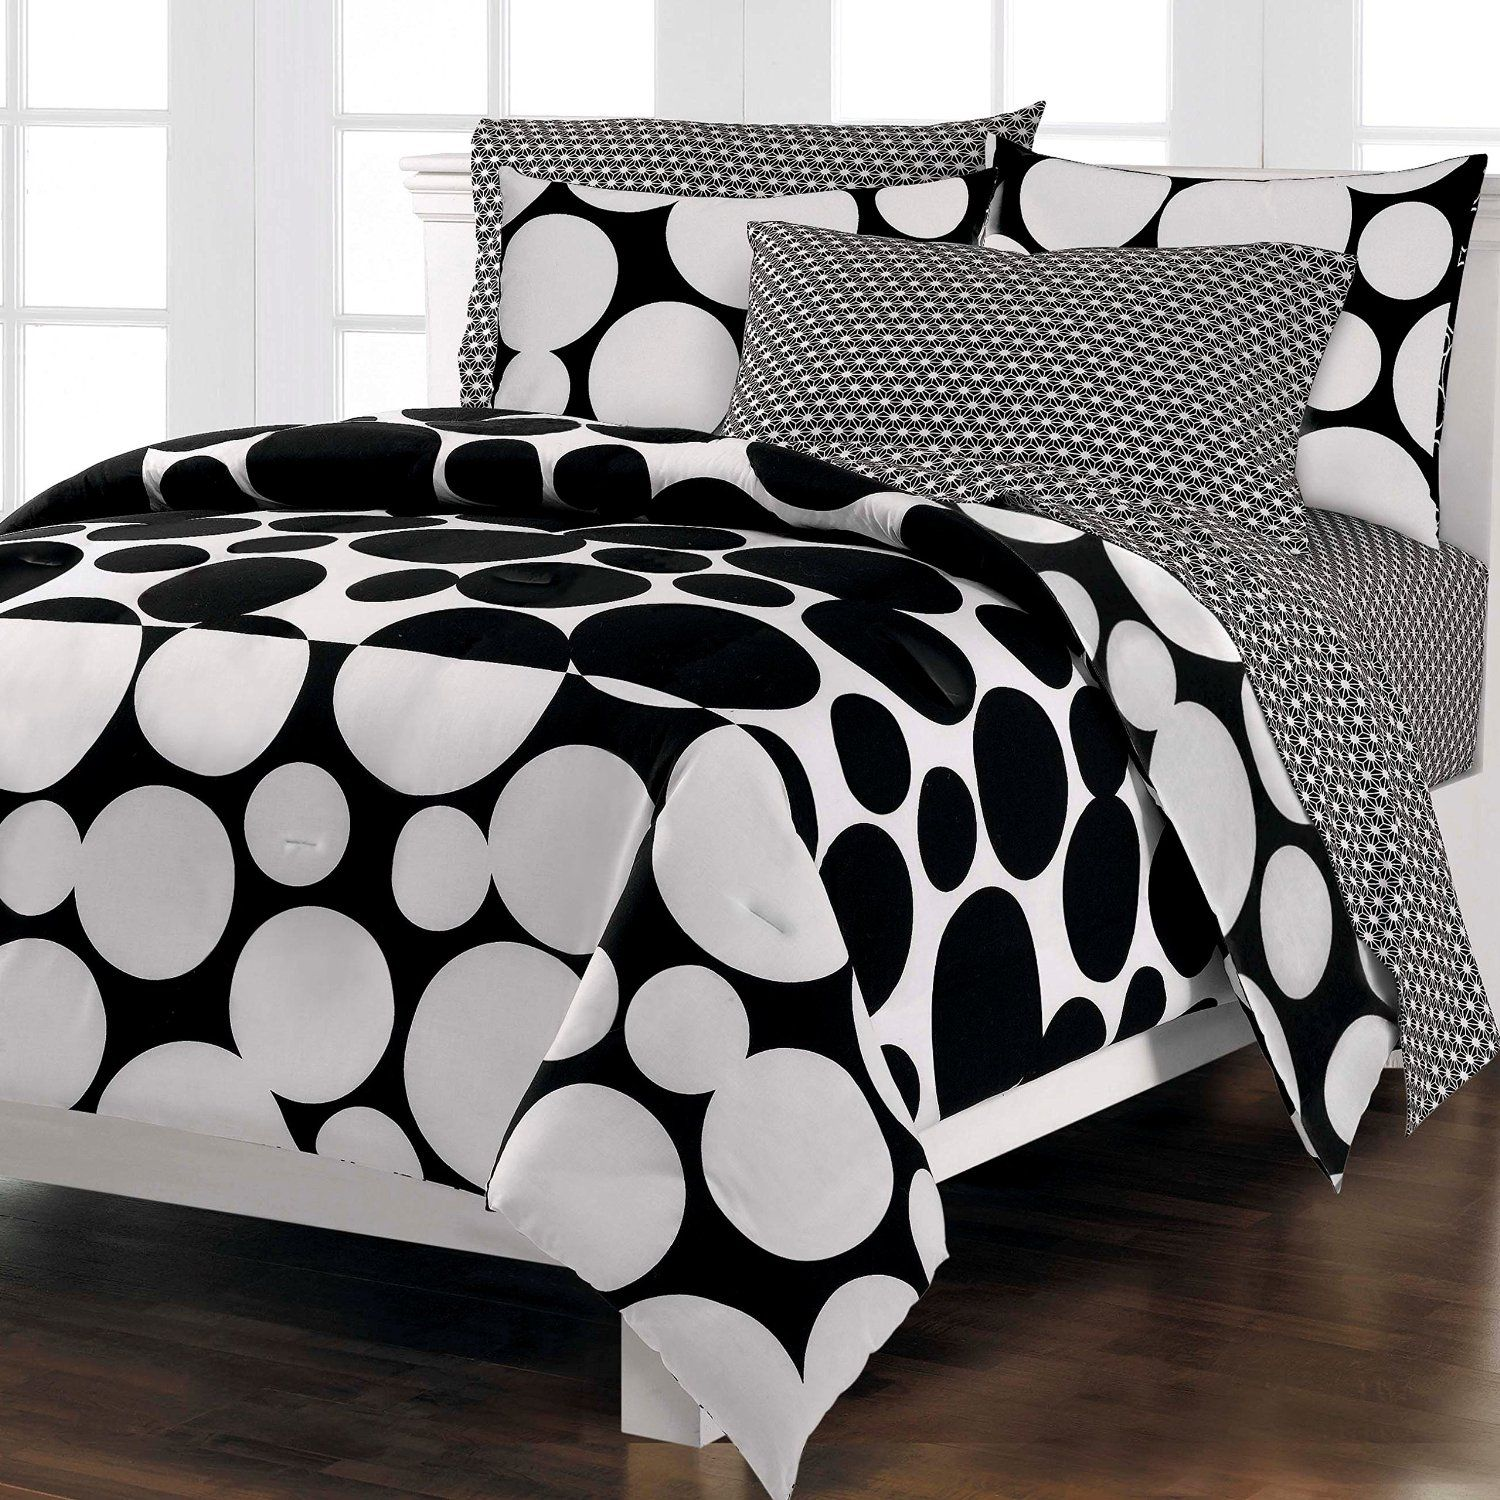 Pin On Ease Bedding With Style